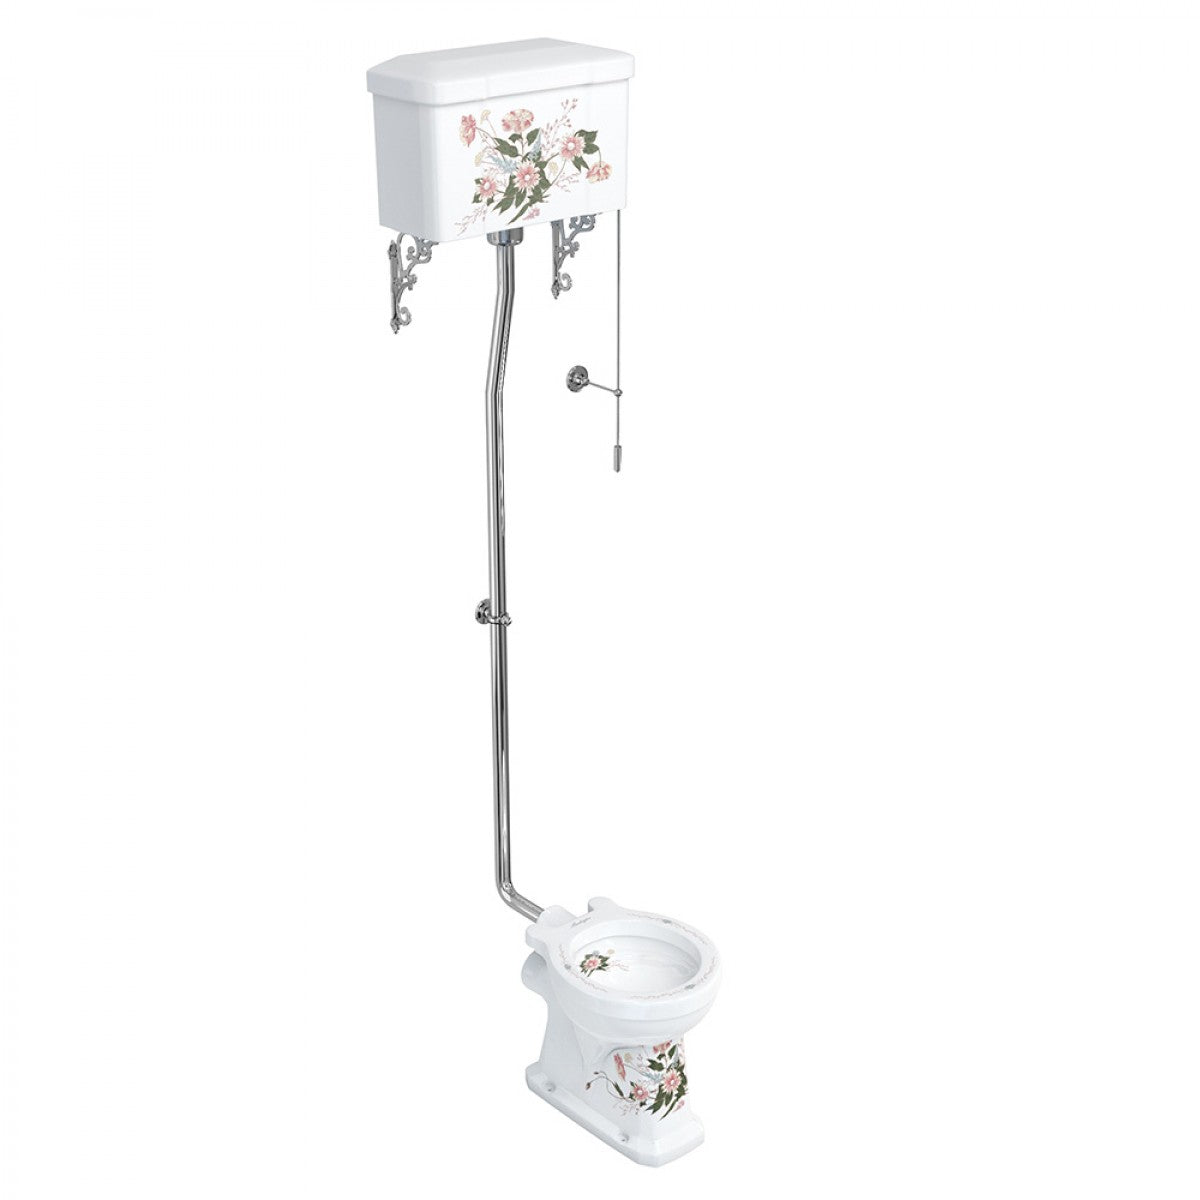 BURLINGTON ENGLISH GARDEN COLLECTION HIGH LEVEL TOILET & SOFT CLOSE SEAT - 670MM PROJECTION